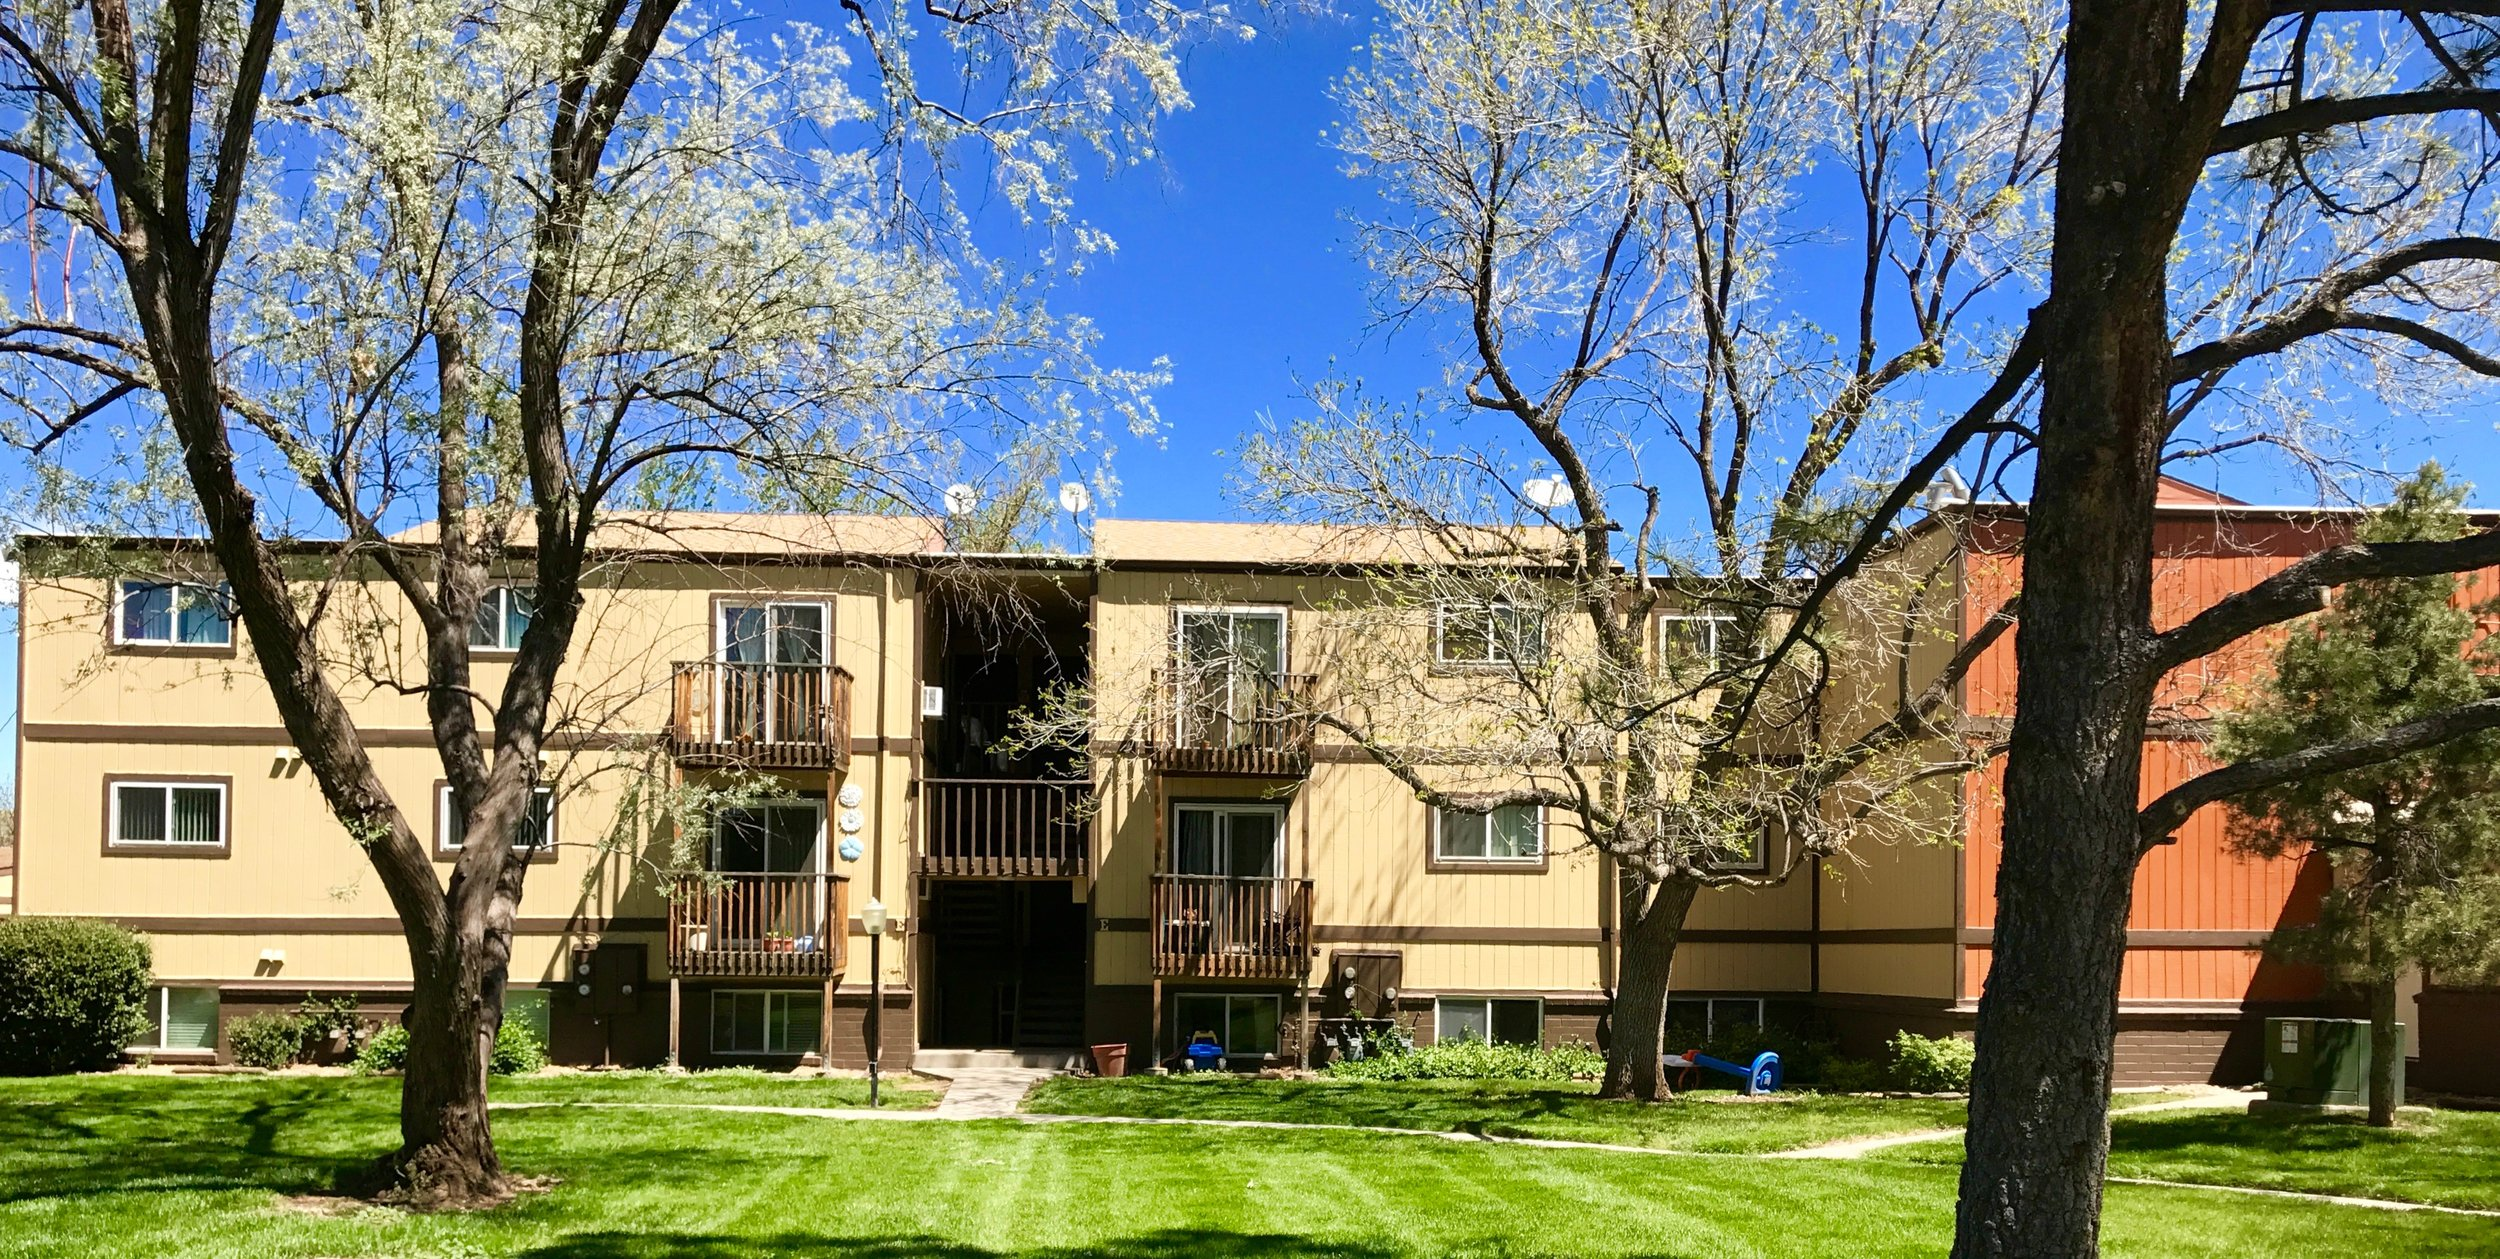 Golden Pines is one of the more affordable condominium communities in Golden, Colorado